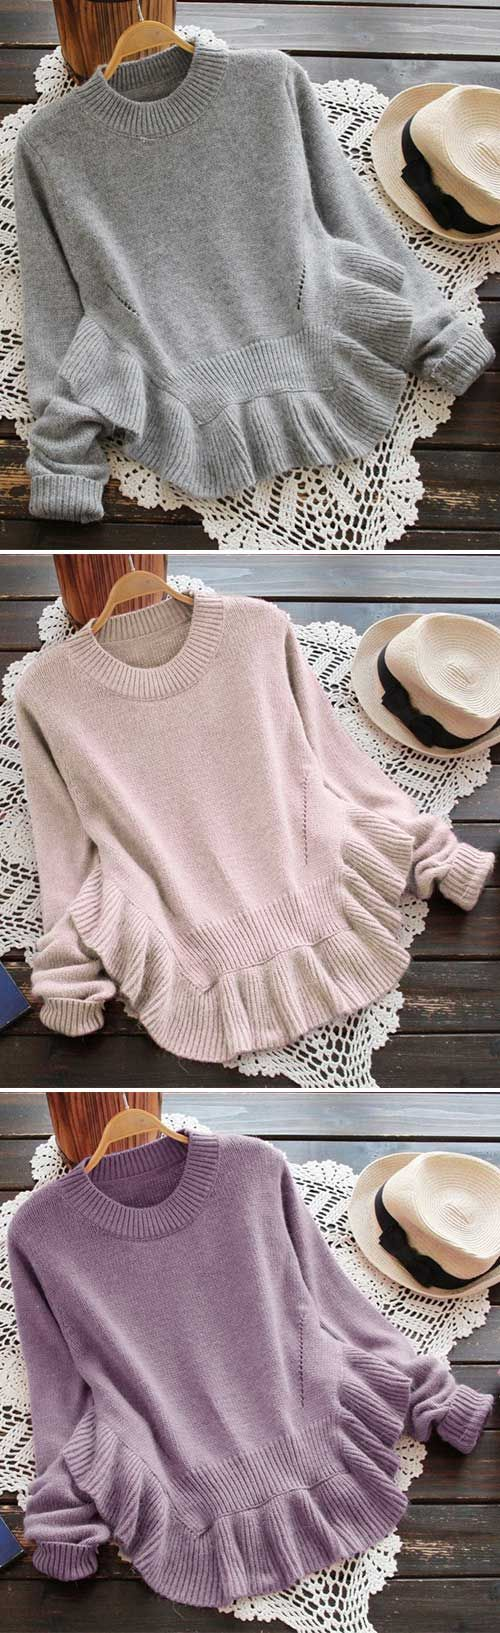 Find The Spark Falbala Sweater | Feelings, 21st and Clothes